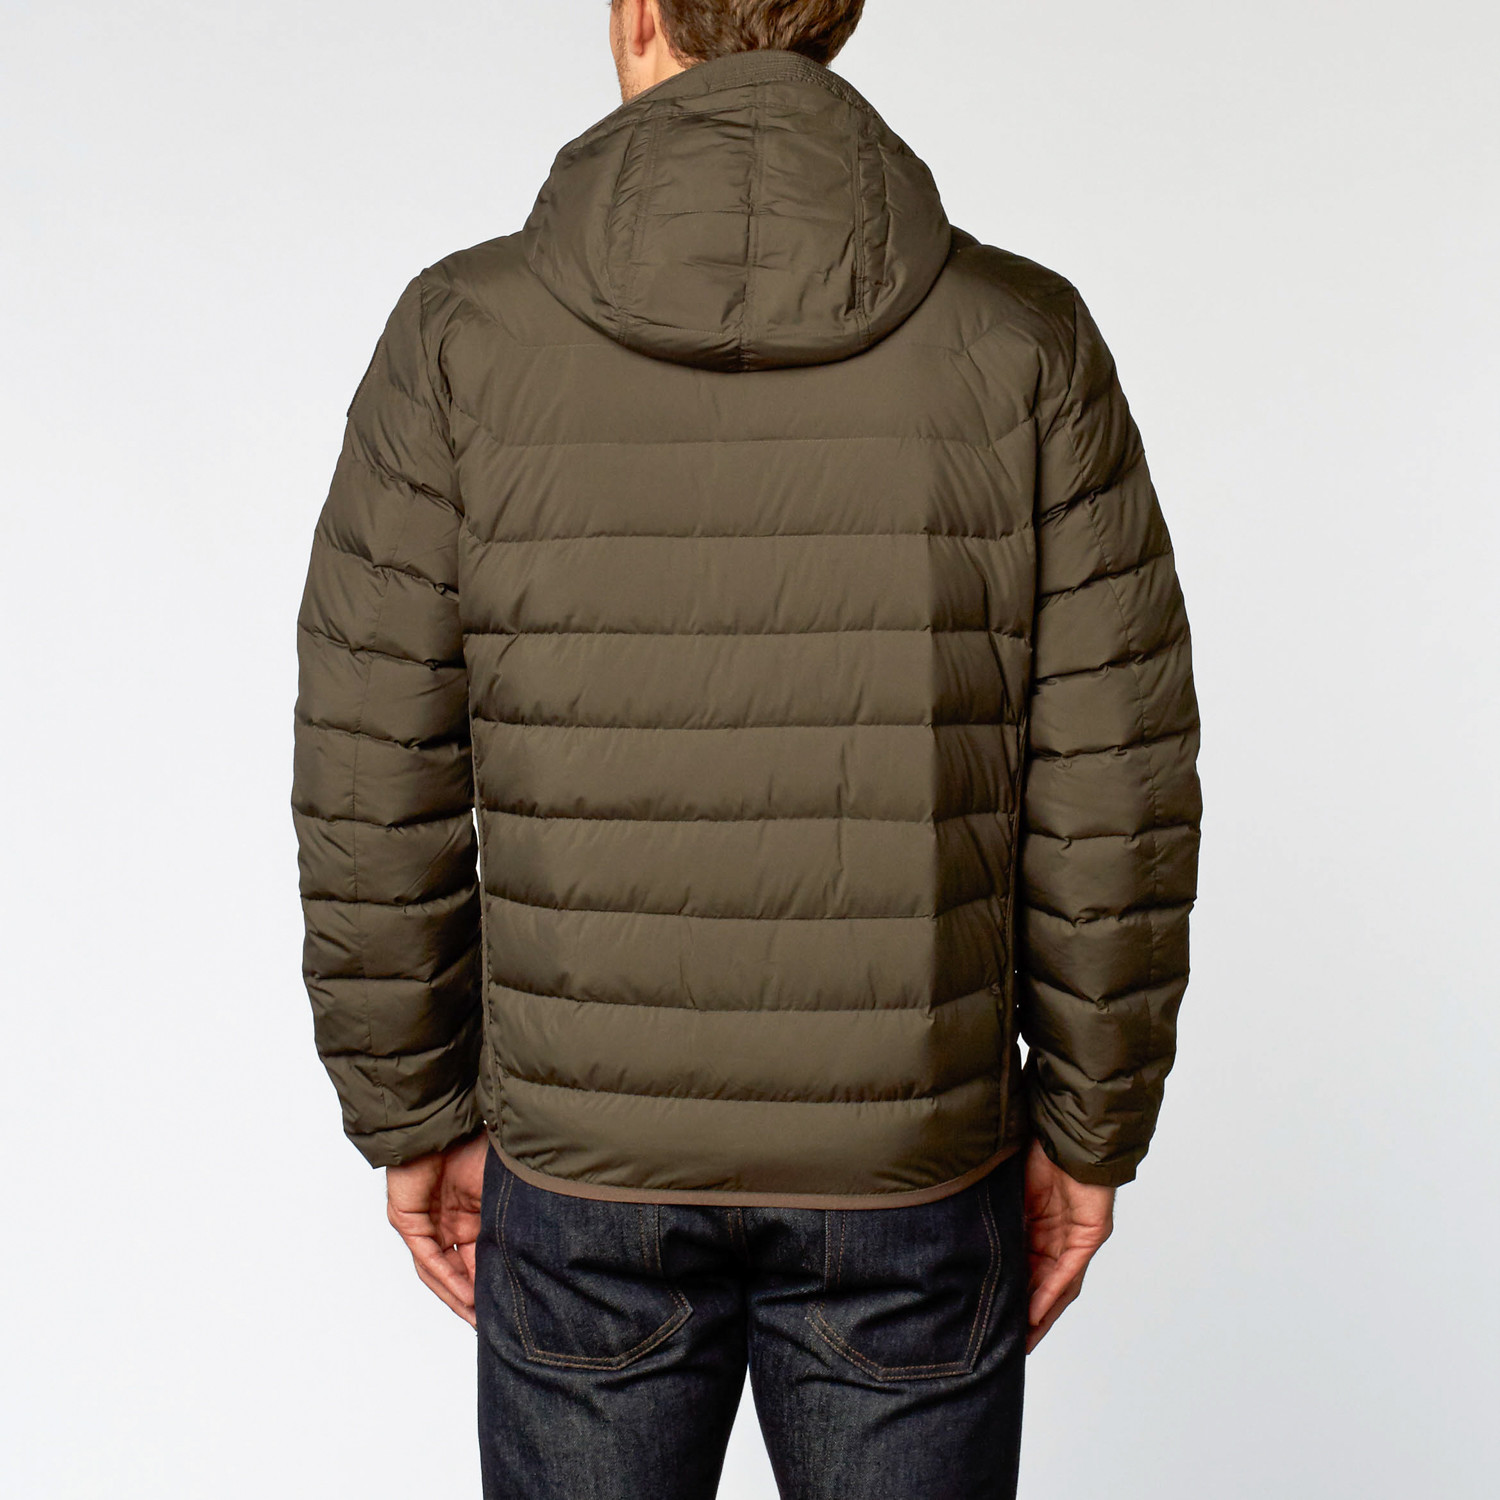 Last Minute Quilted Down Jacket // Bush (S)